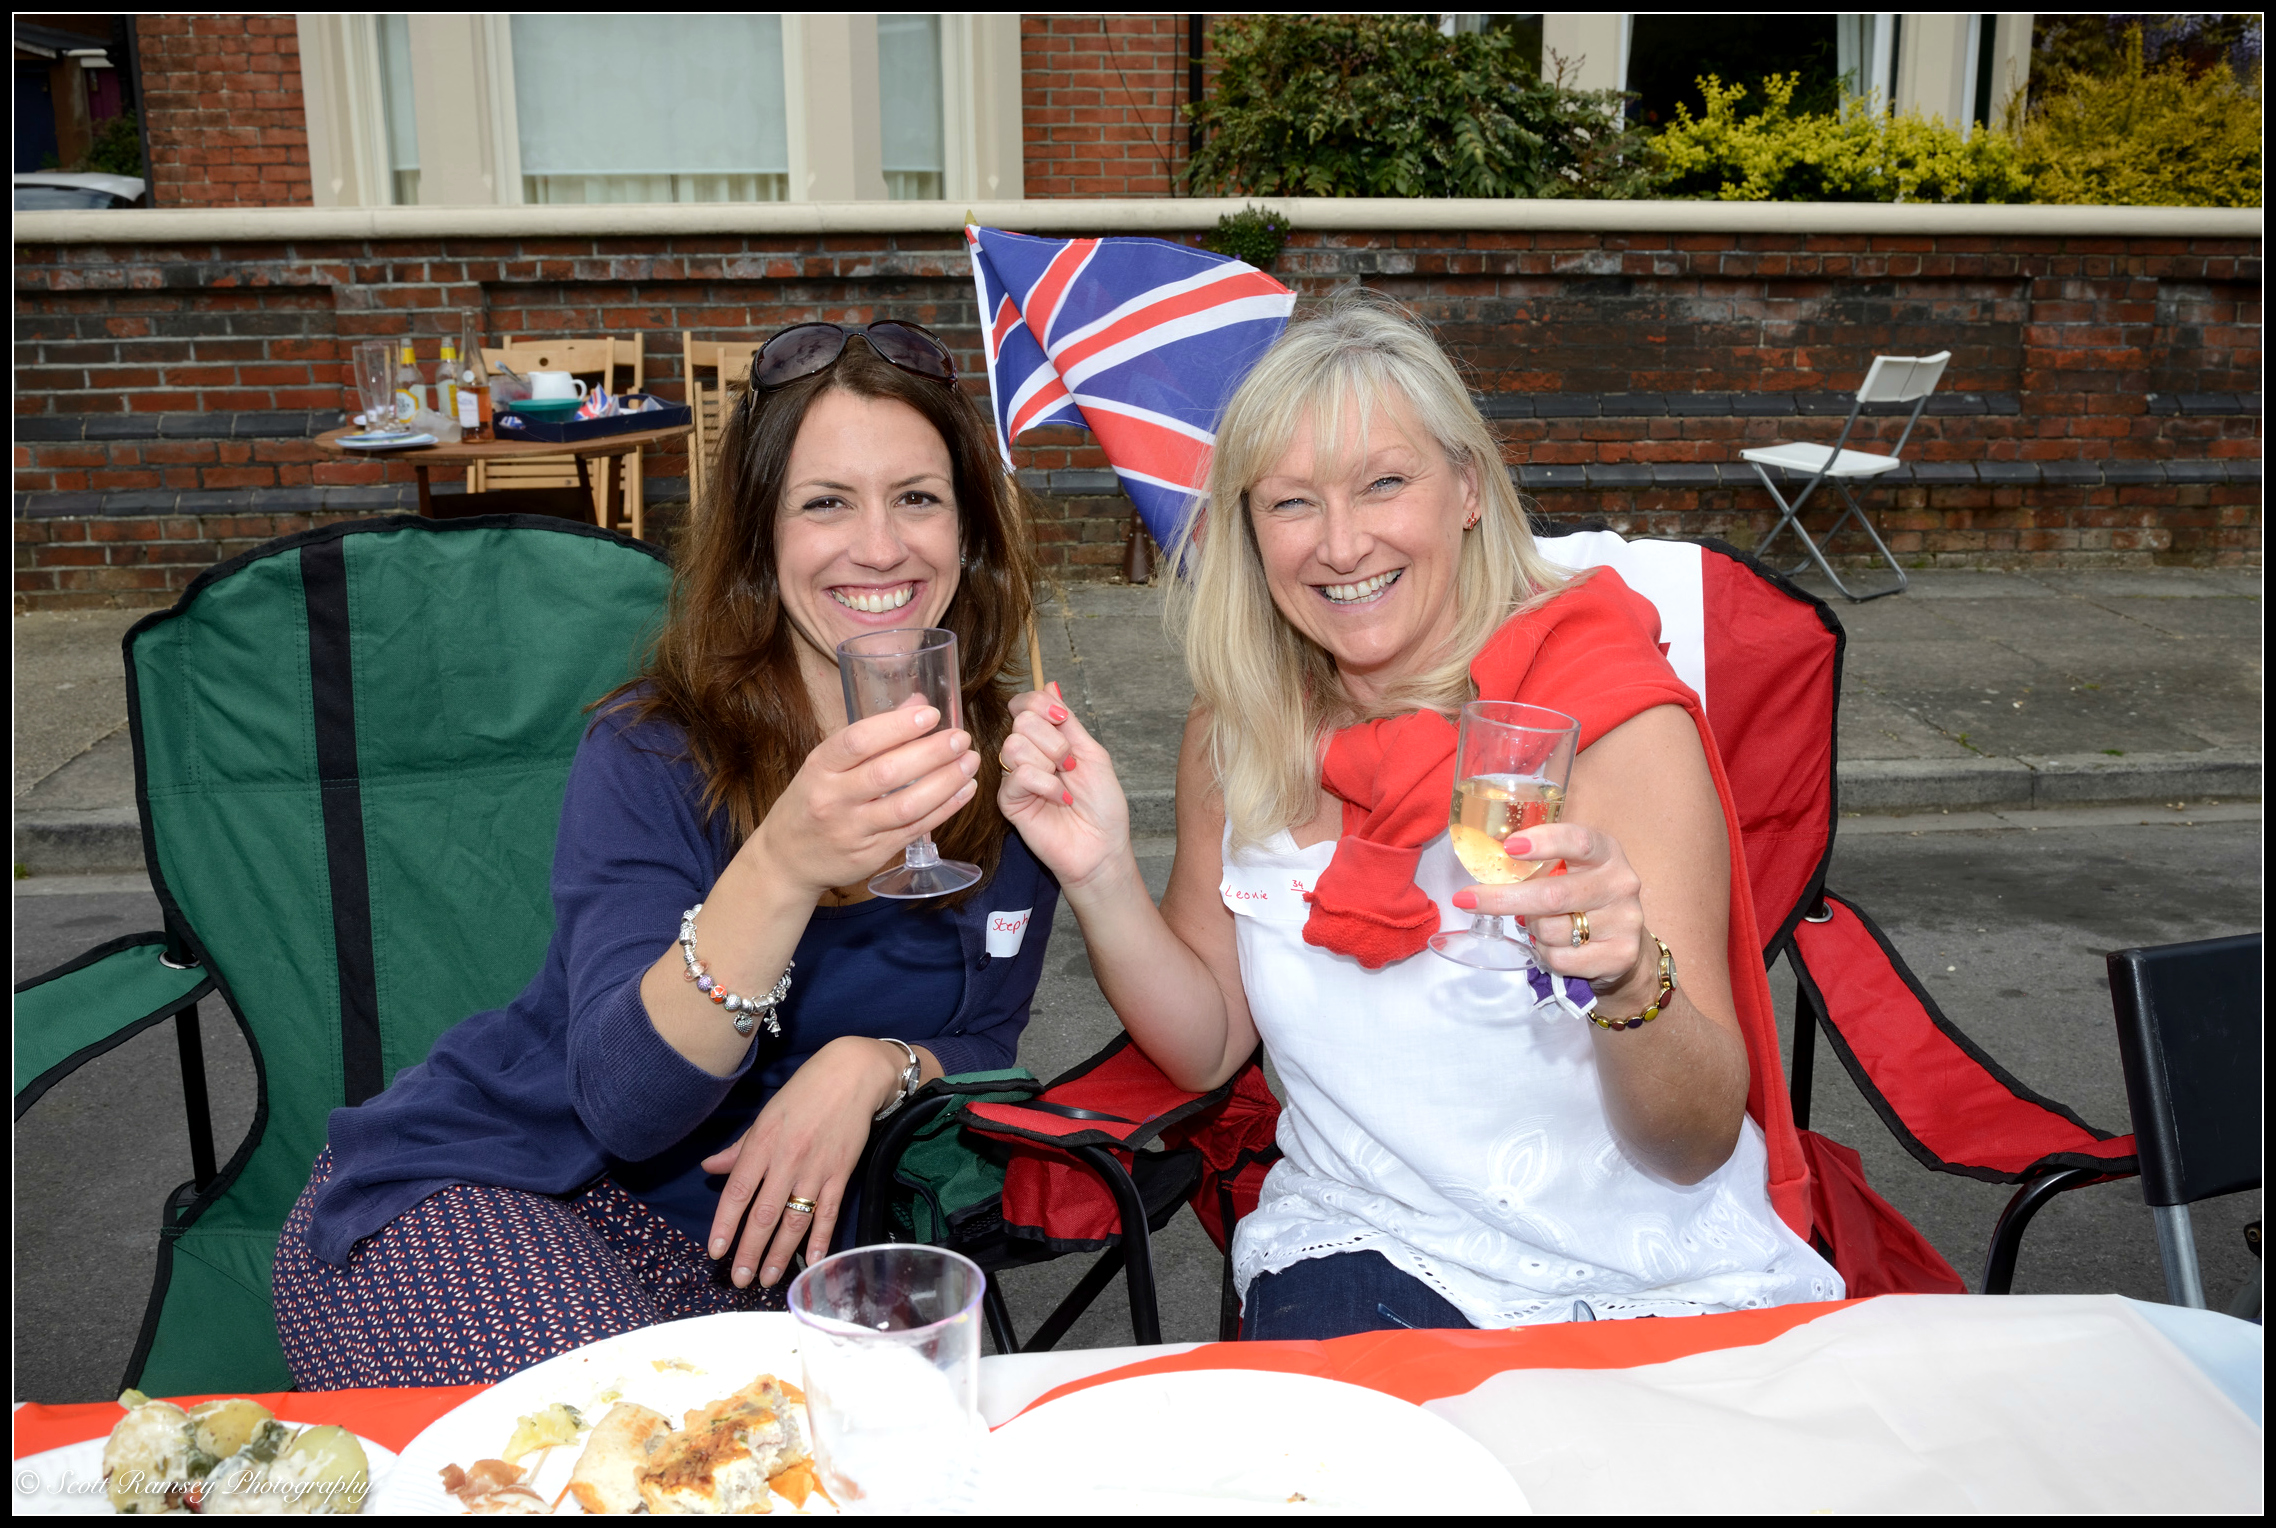 Two of the residents of Nettlecombe Avenue in Southsea enjoy the VE Day 70th anniversary street party. © Scott Ramsey Photography.